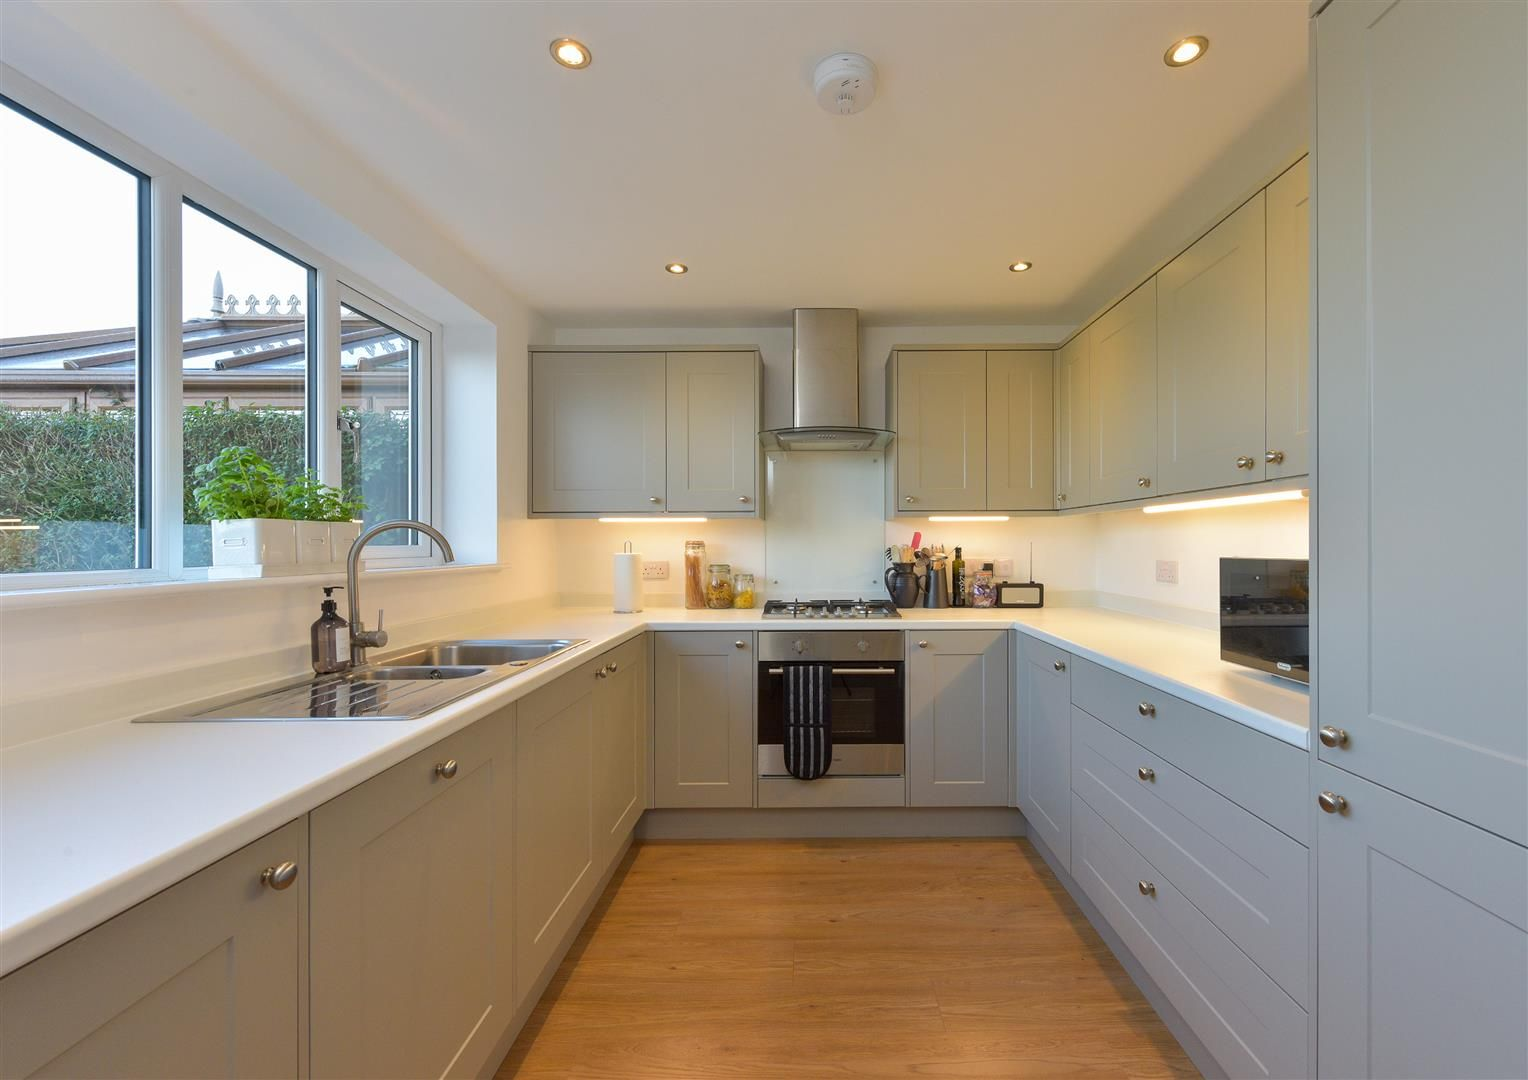 3 bed house for sale in Clent 4